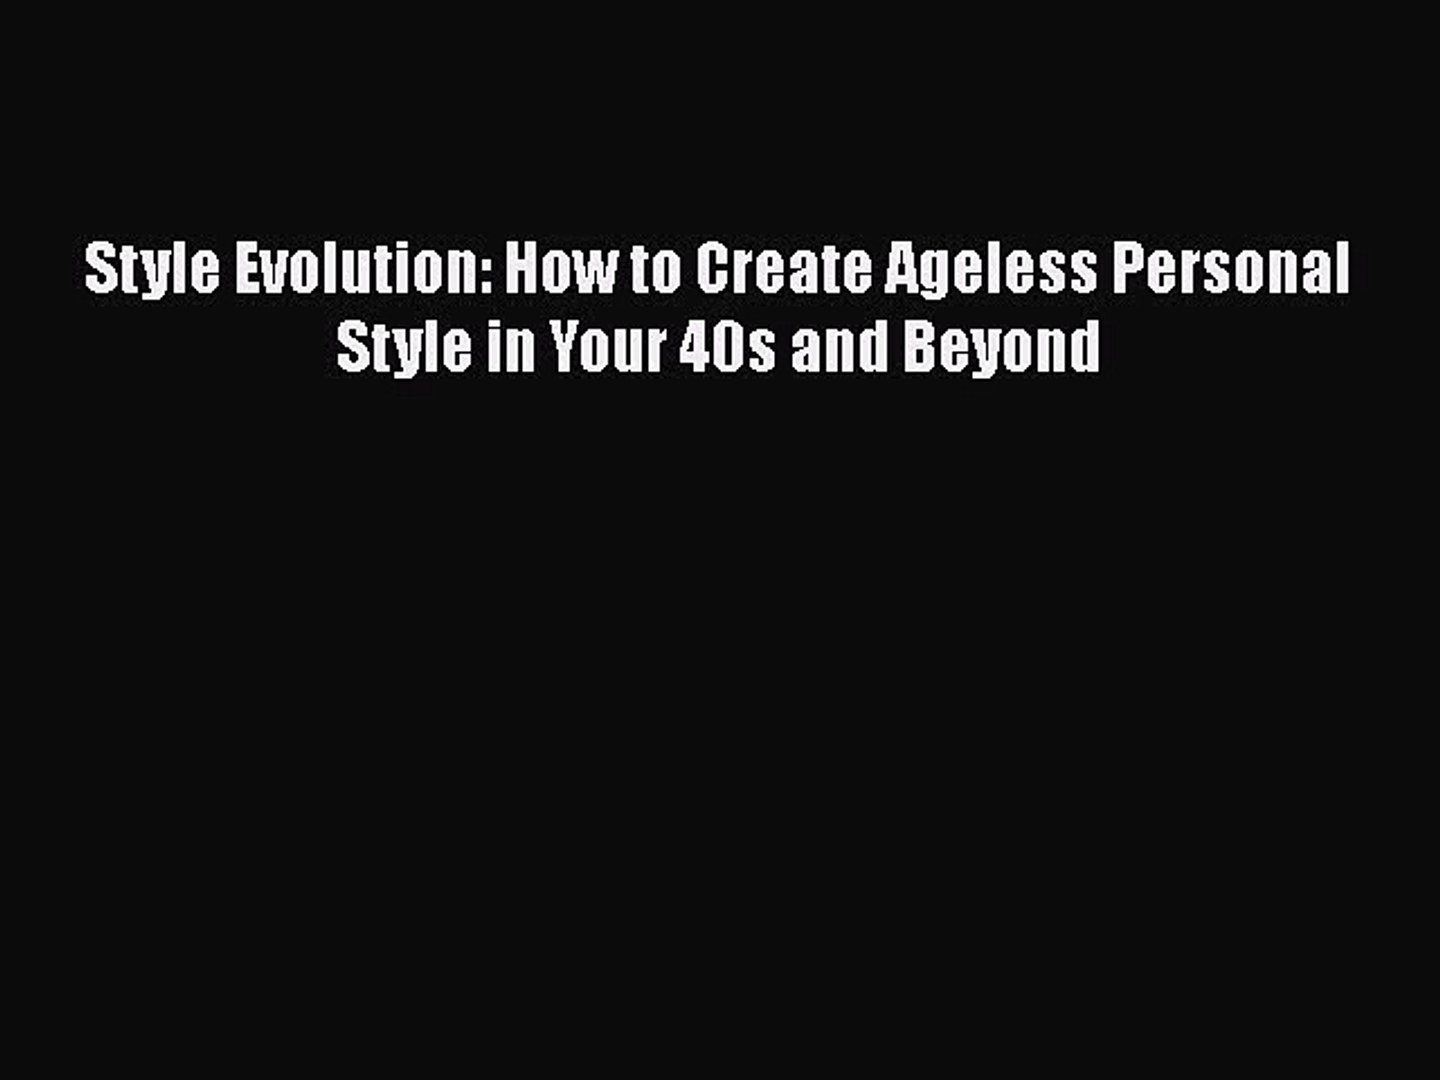 [PDF] Style Evolution: How to Create Ageless Personal Style in Your 40s and Beyond [Download]